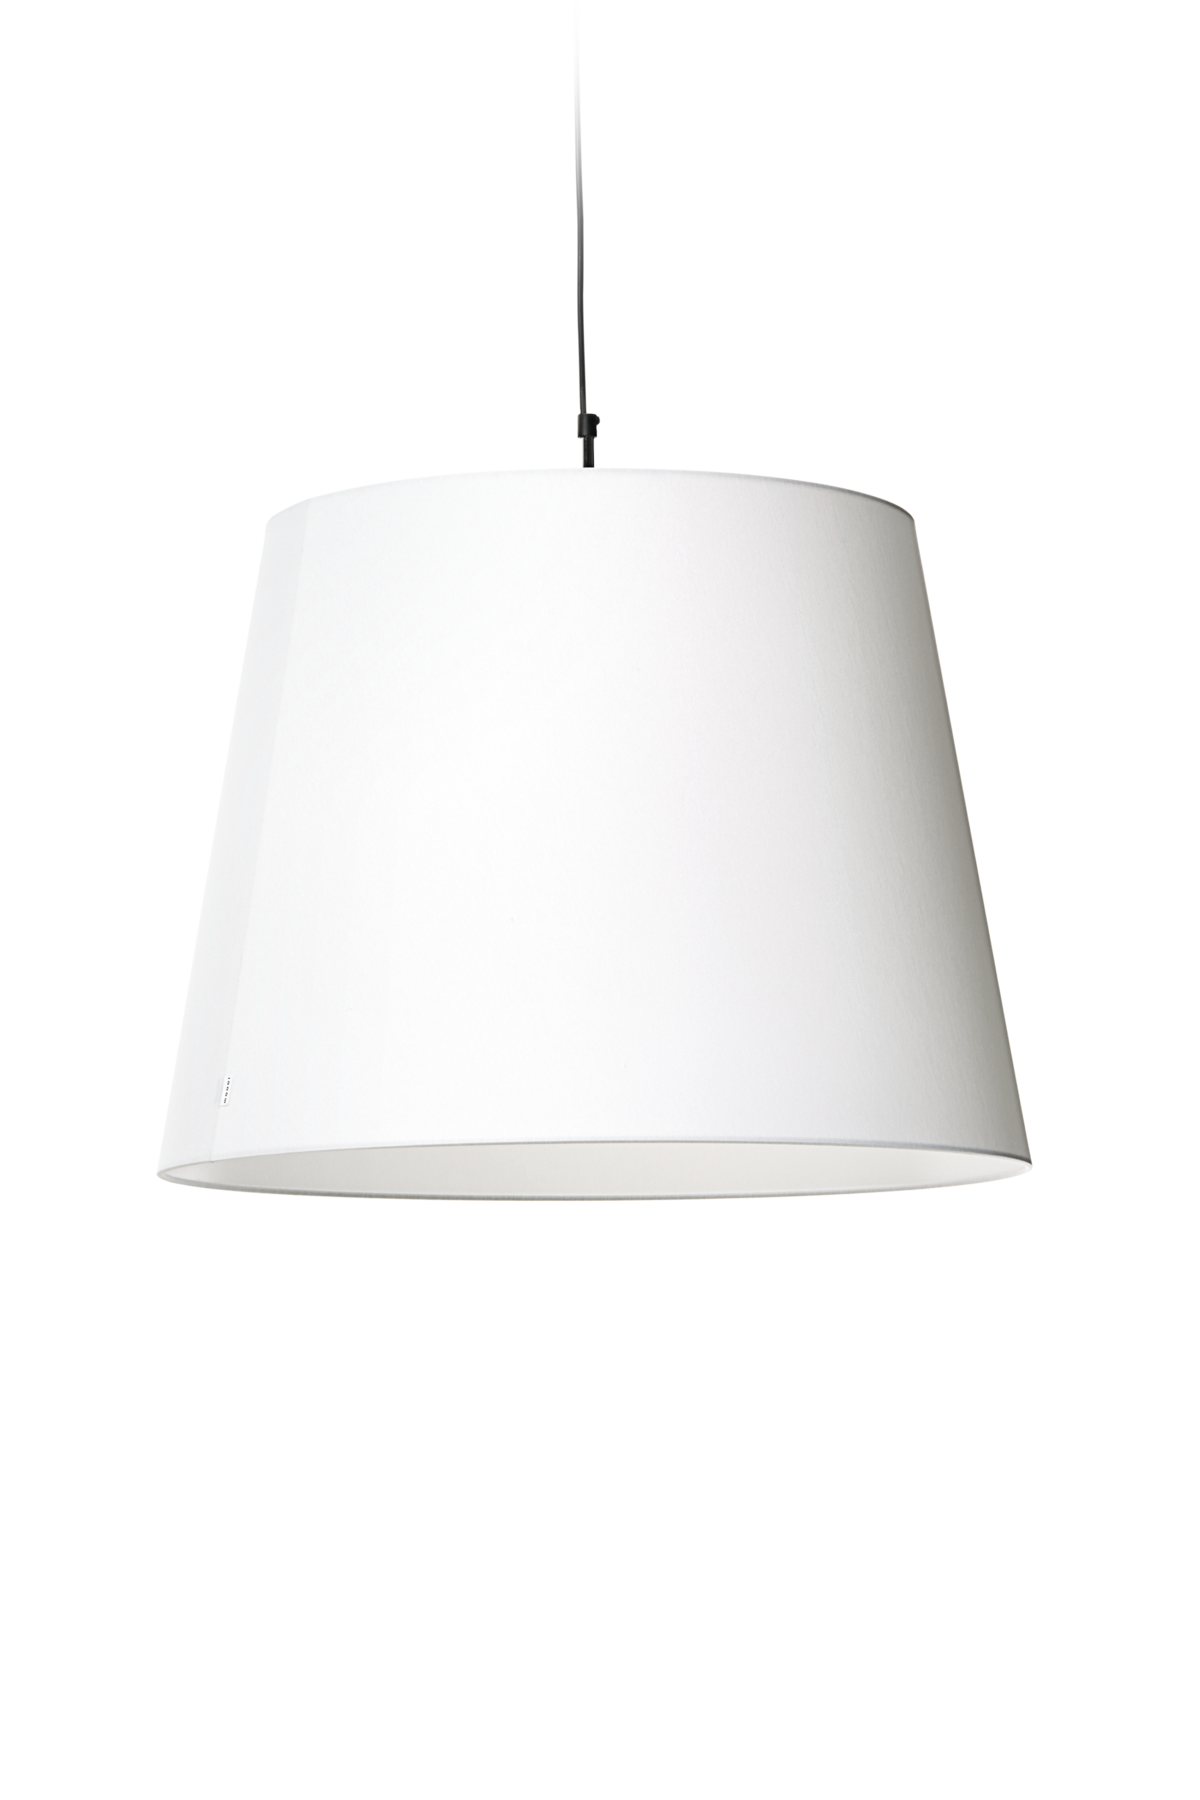 Hang suspension light front view